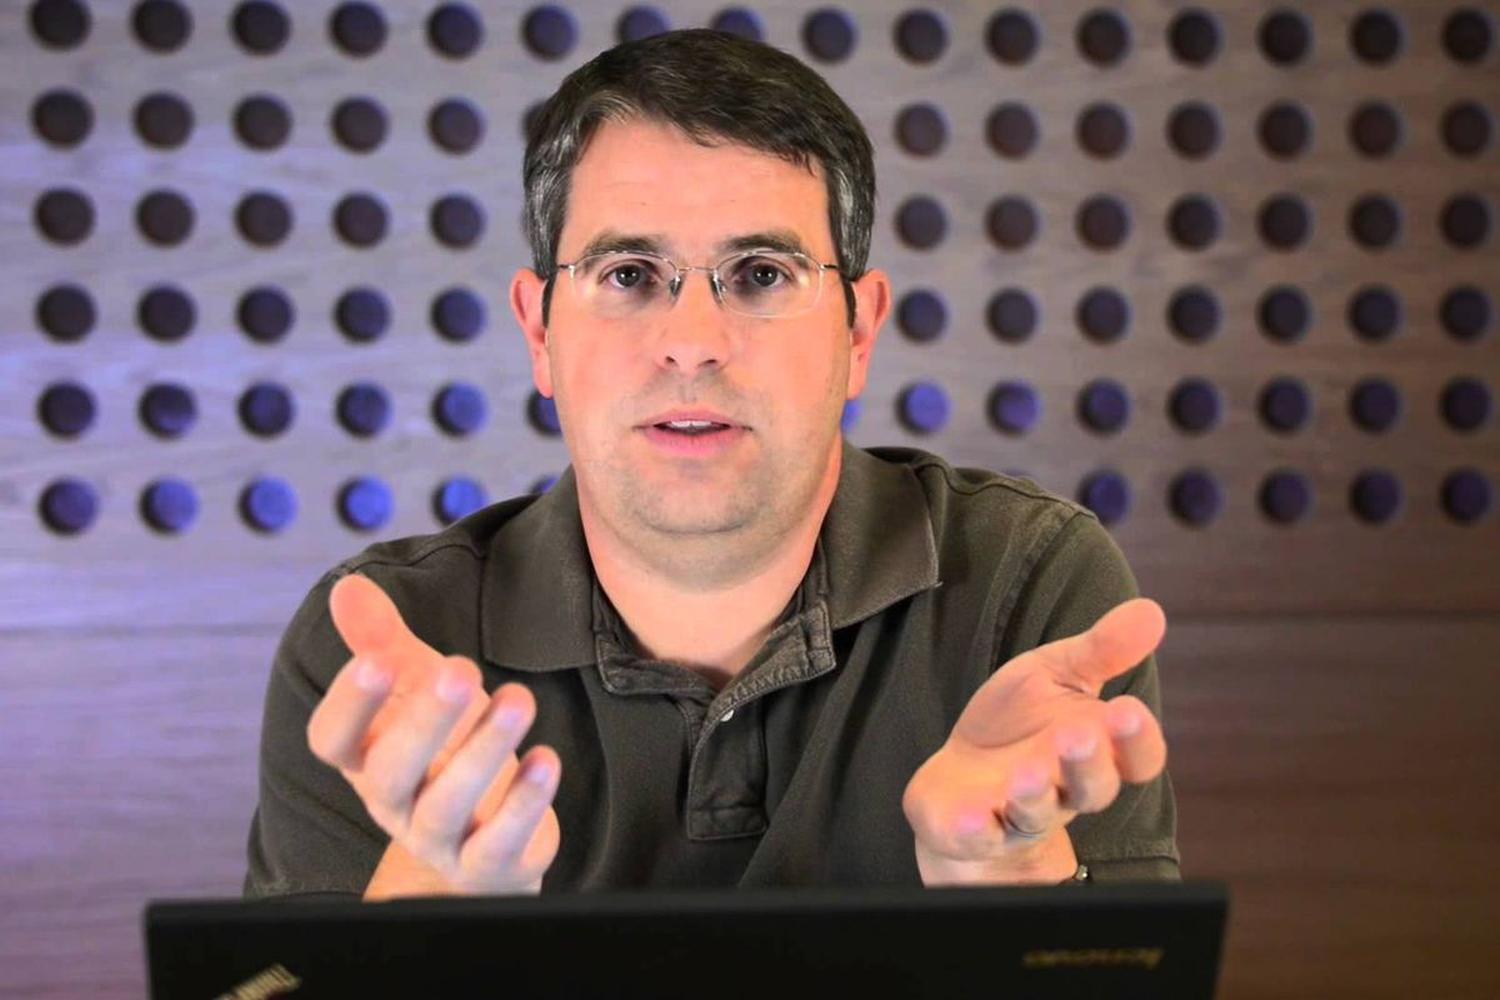 matt cutts googler